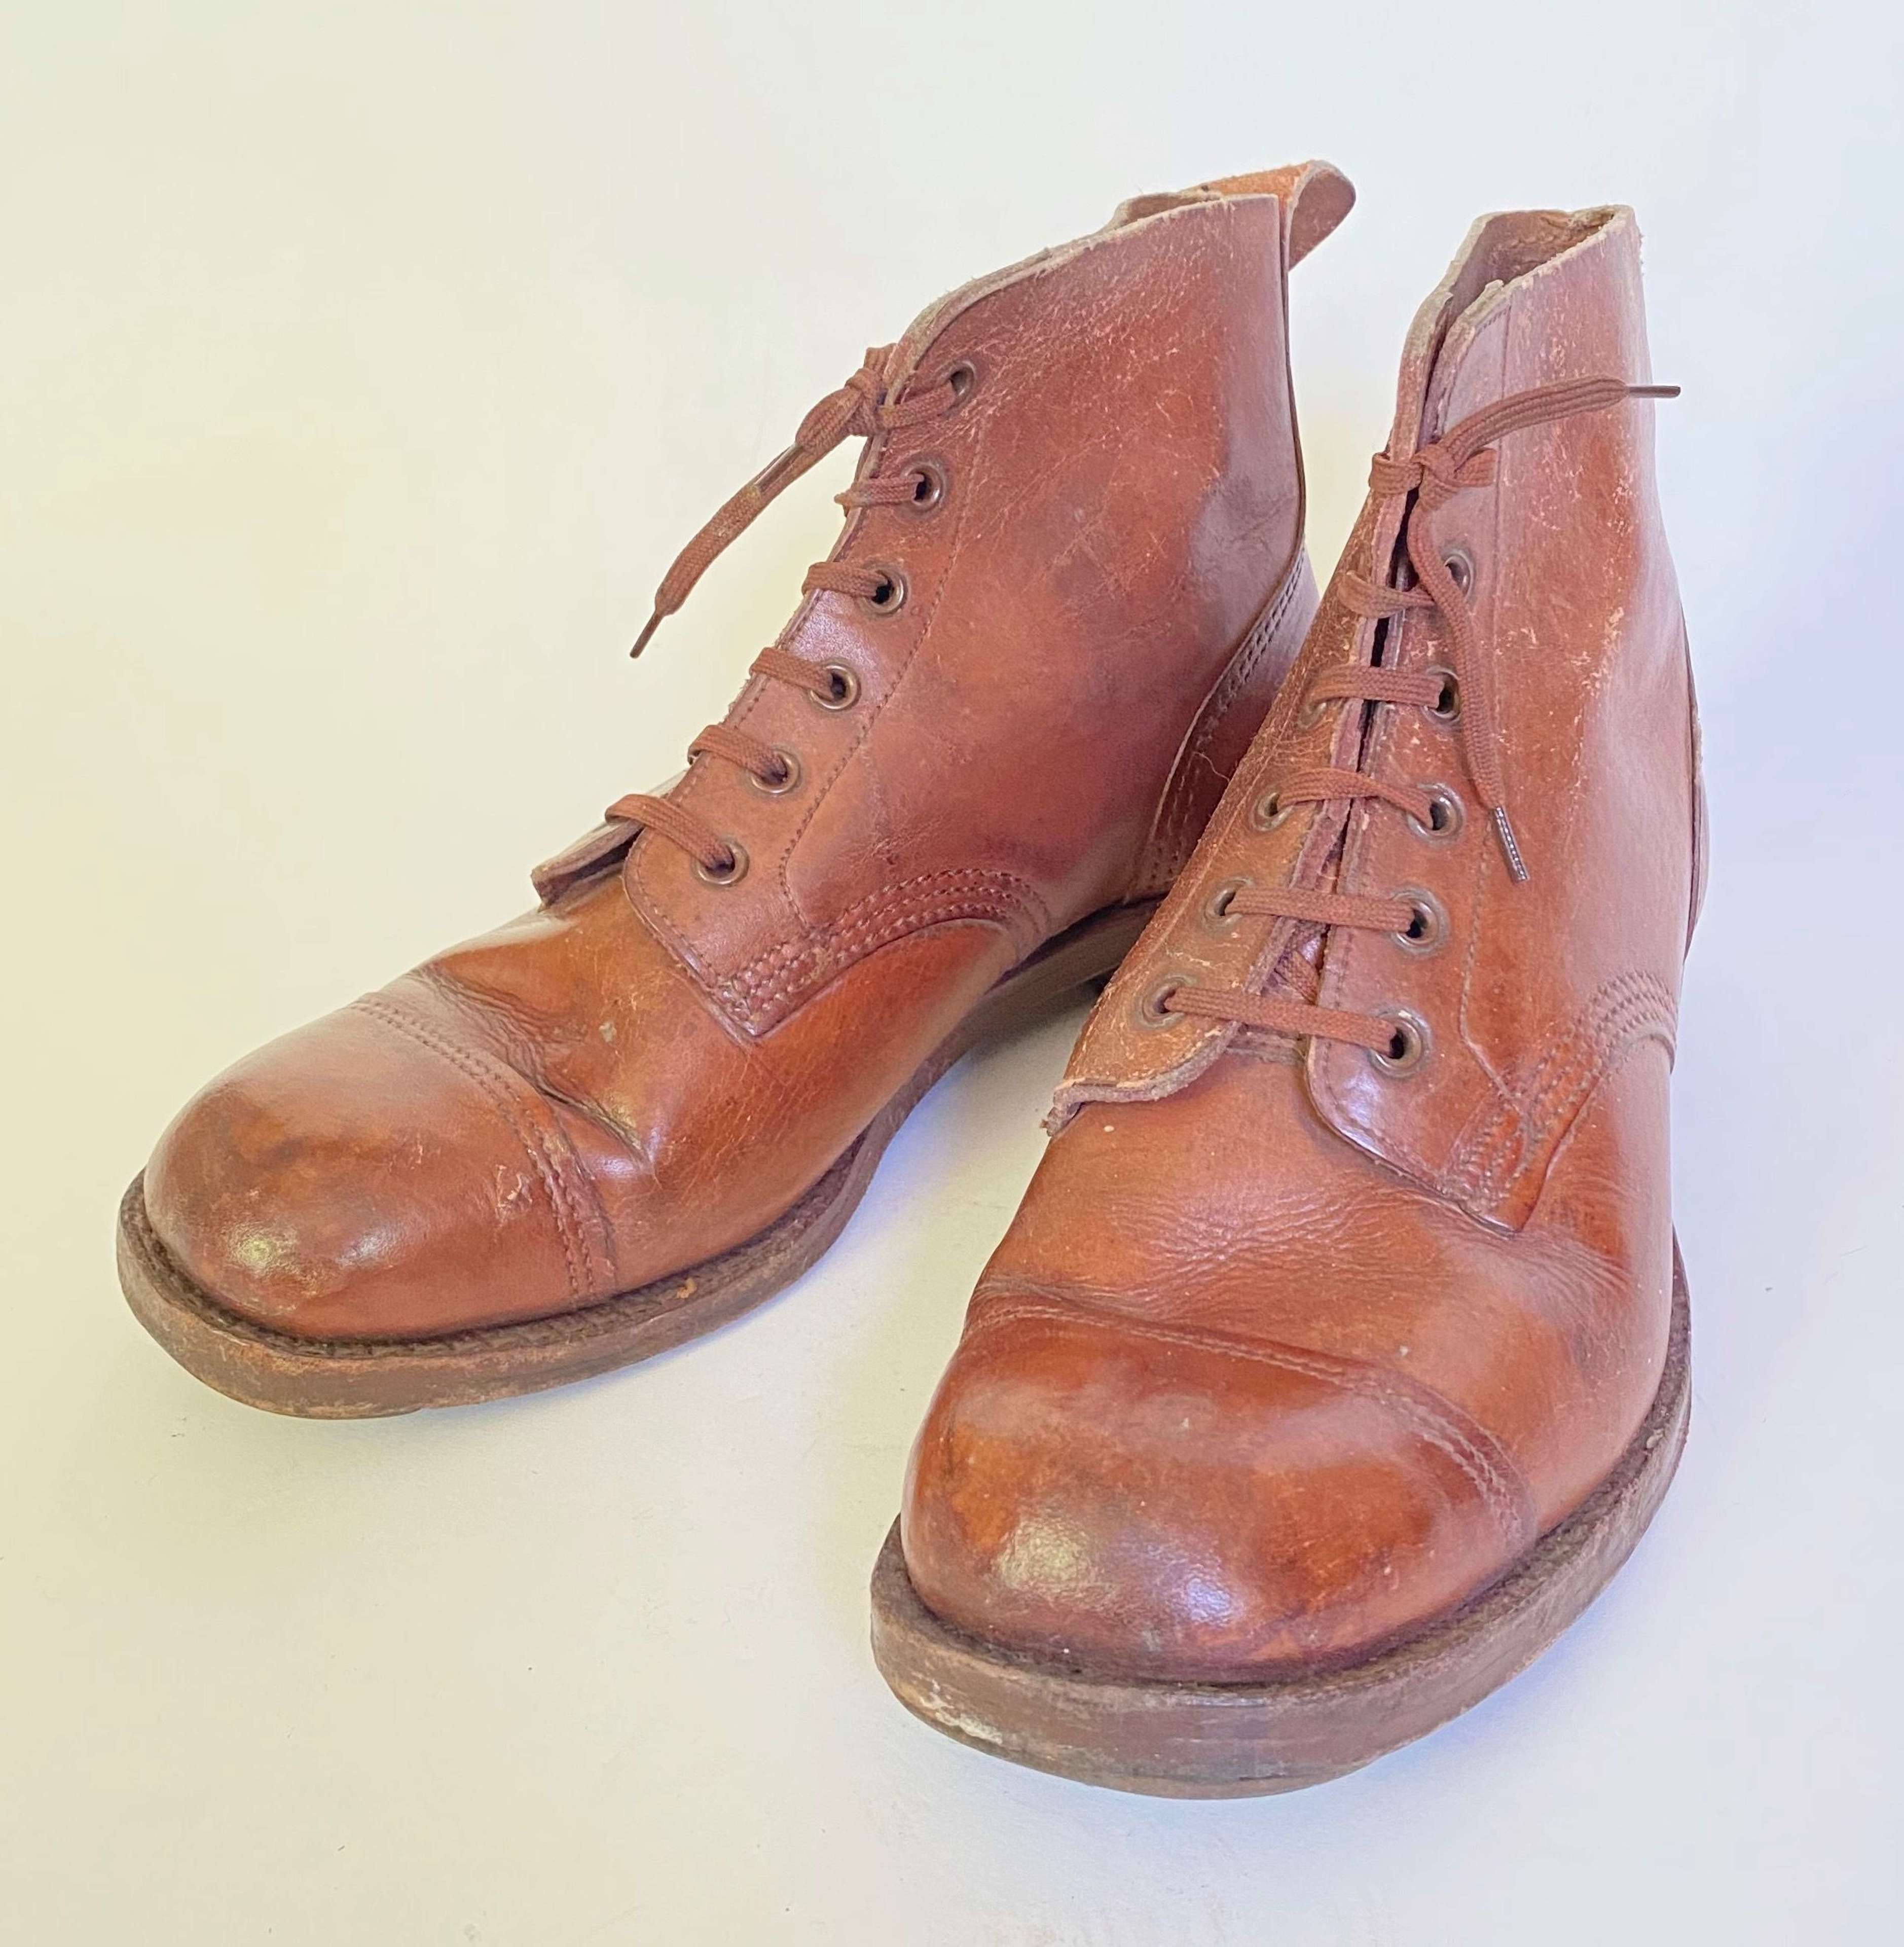 WW2 Period British Army Officer's Boots.